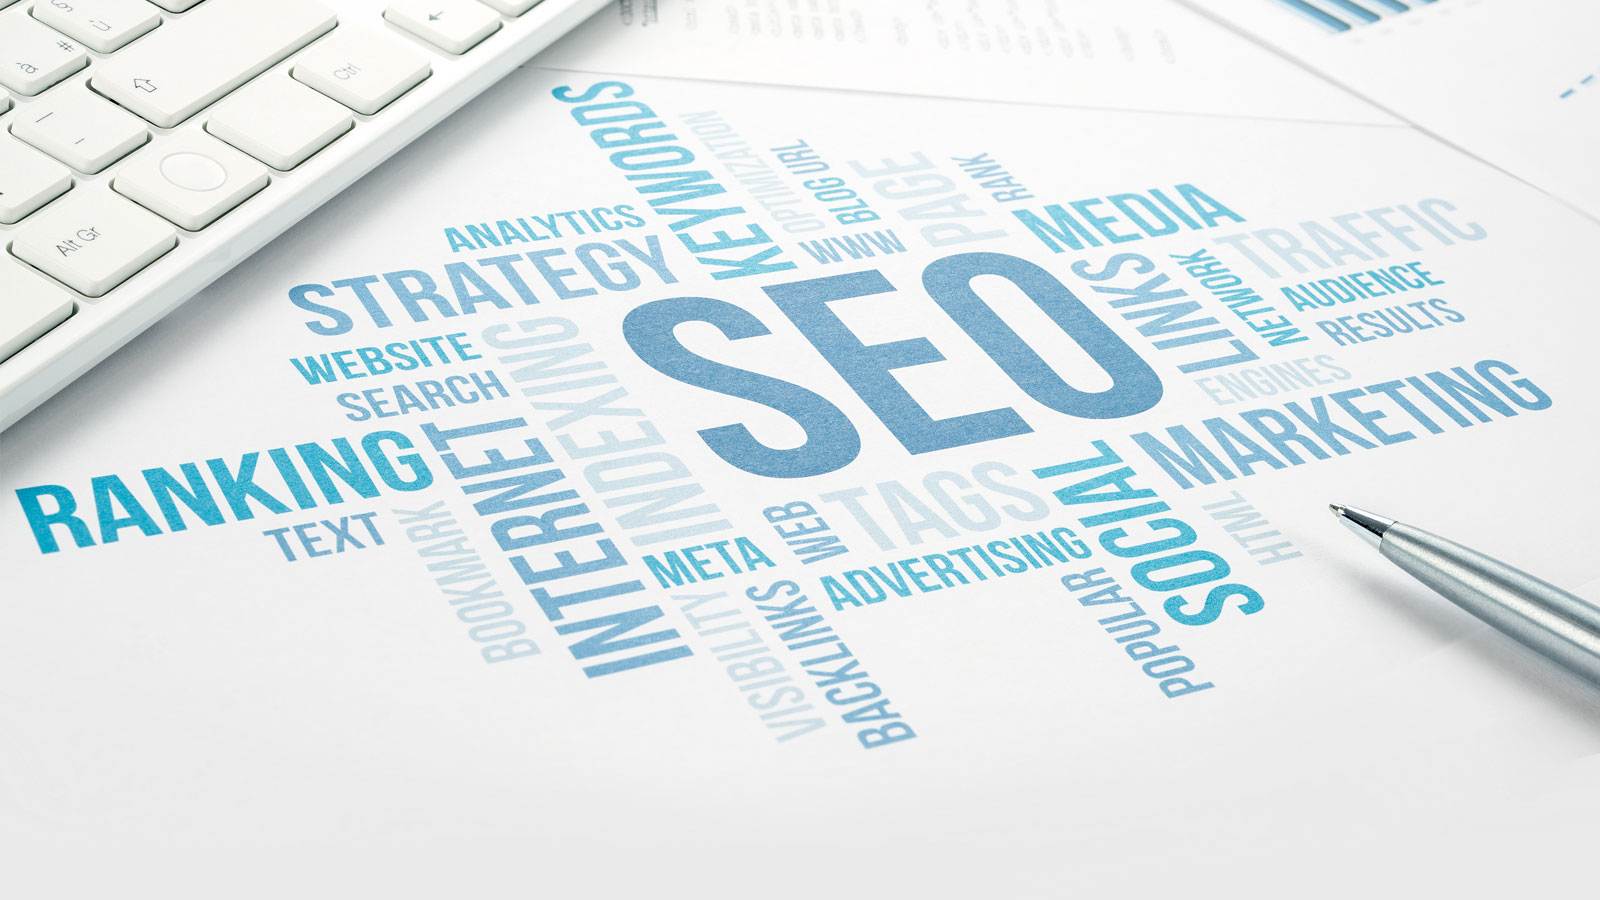 How does hosting affect your website's SEO?